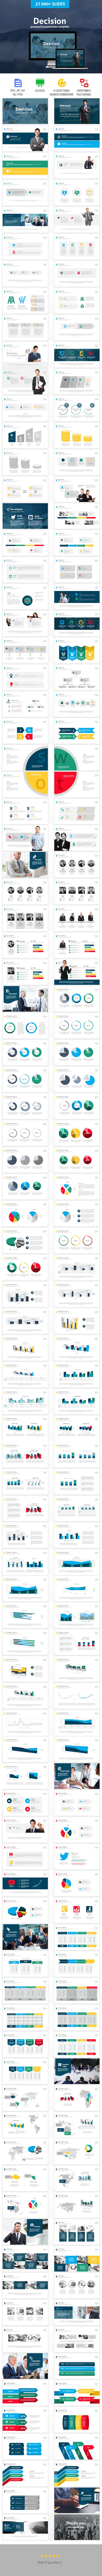 Decision Powerpoint Presentation Template  #professional #presentation • Download ➝ https://graphicriver.net/item/decision-powerpoint-presentation-template/18251307?ref=pxcr